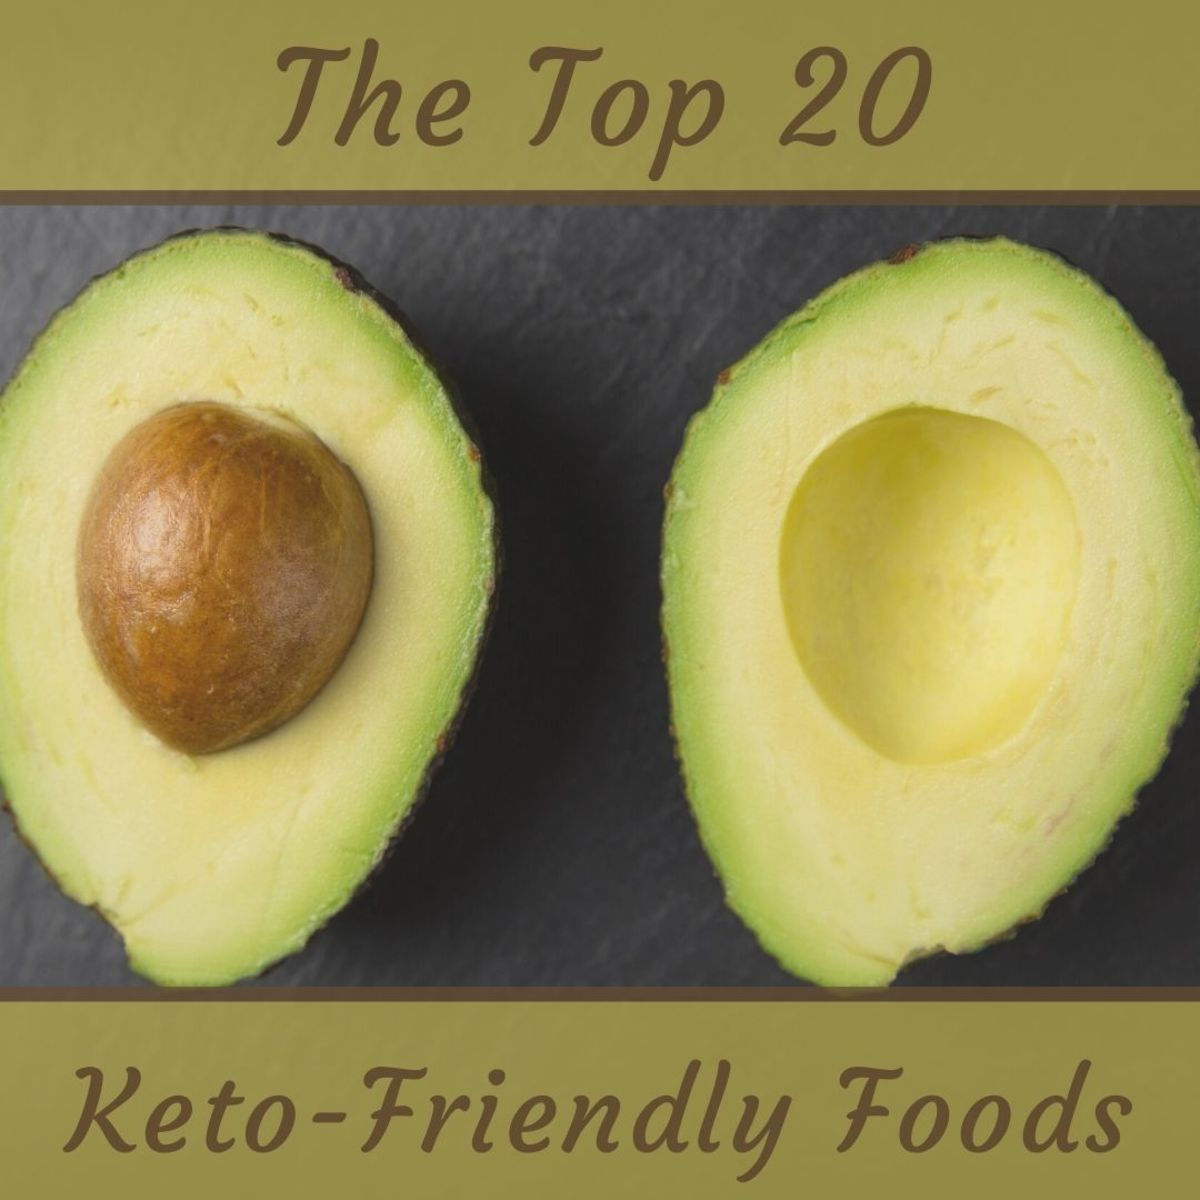 My list of the top 20 keto-friendly foods